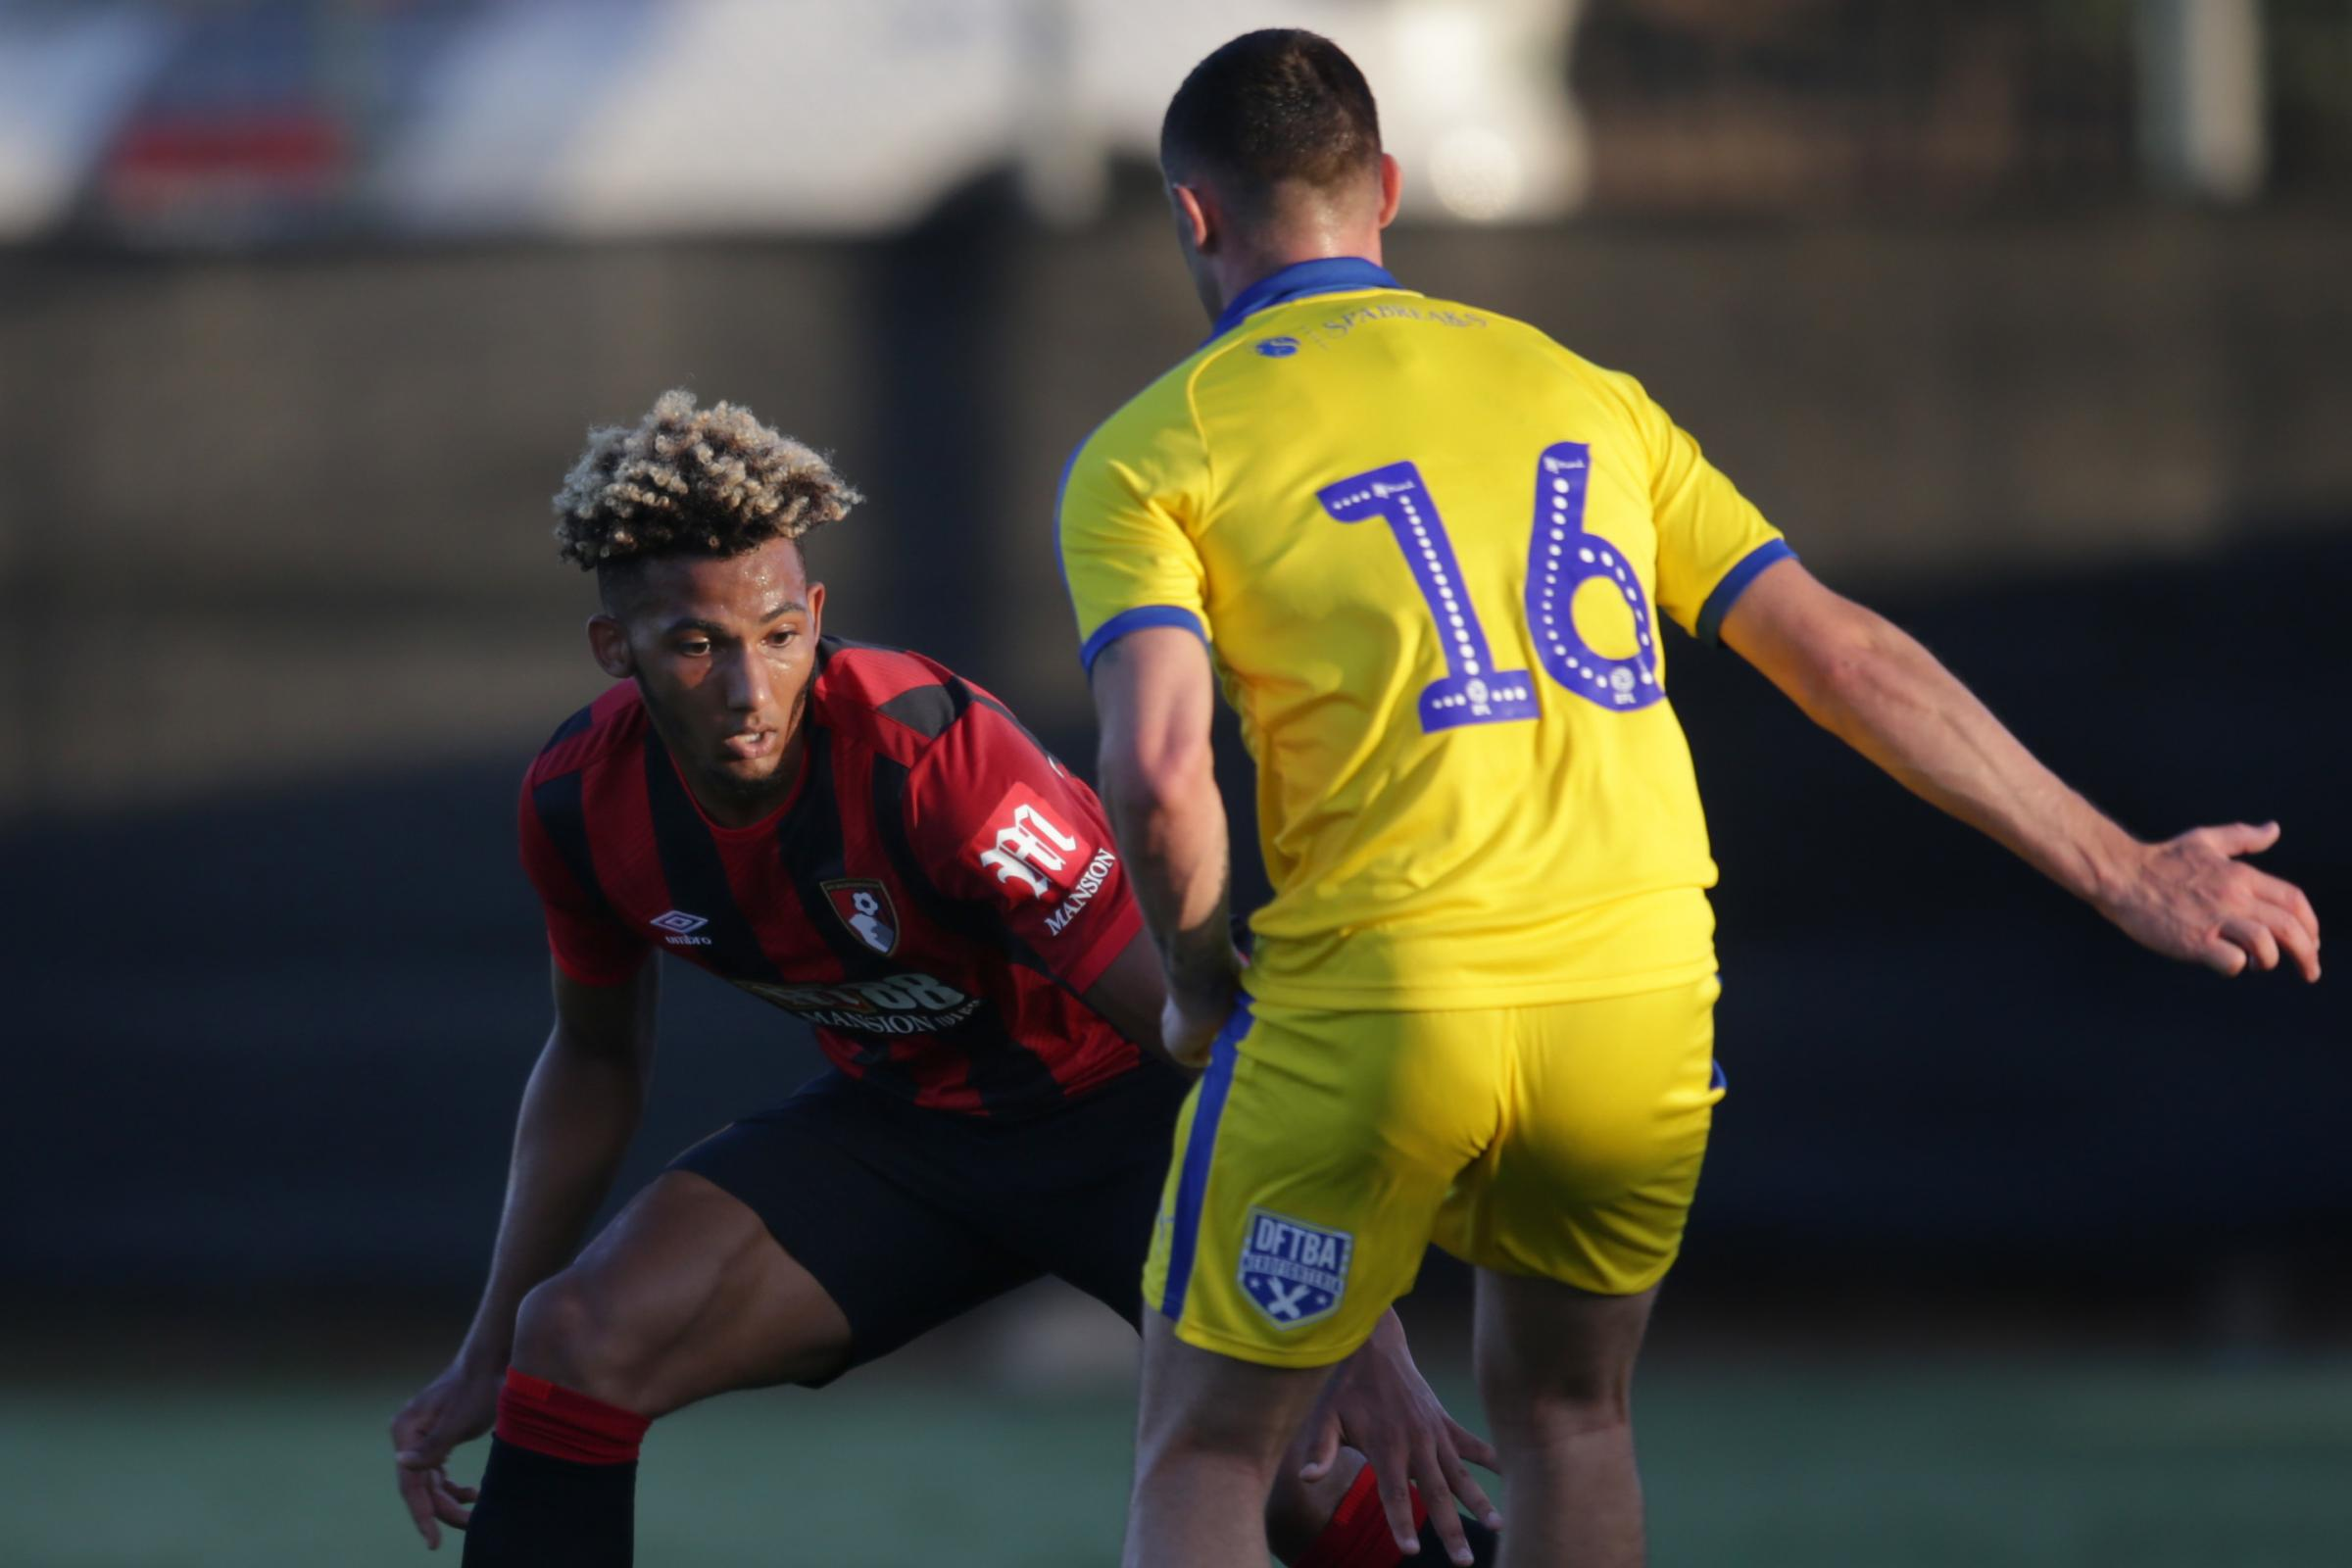 Lloyd Kelly to take part in first training session back with AFC Bournemouth following ankle injury